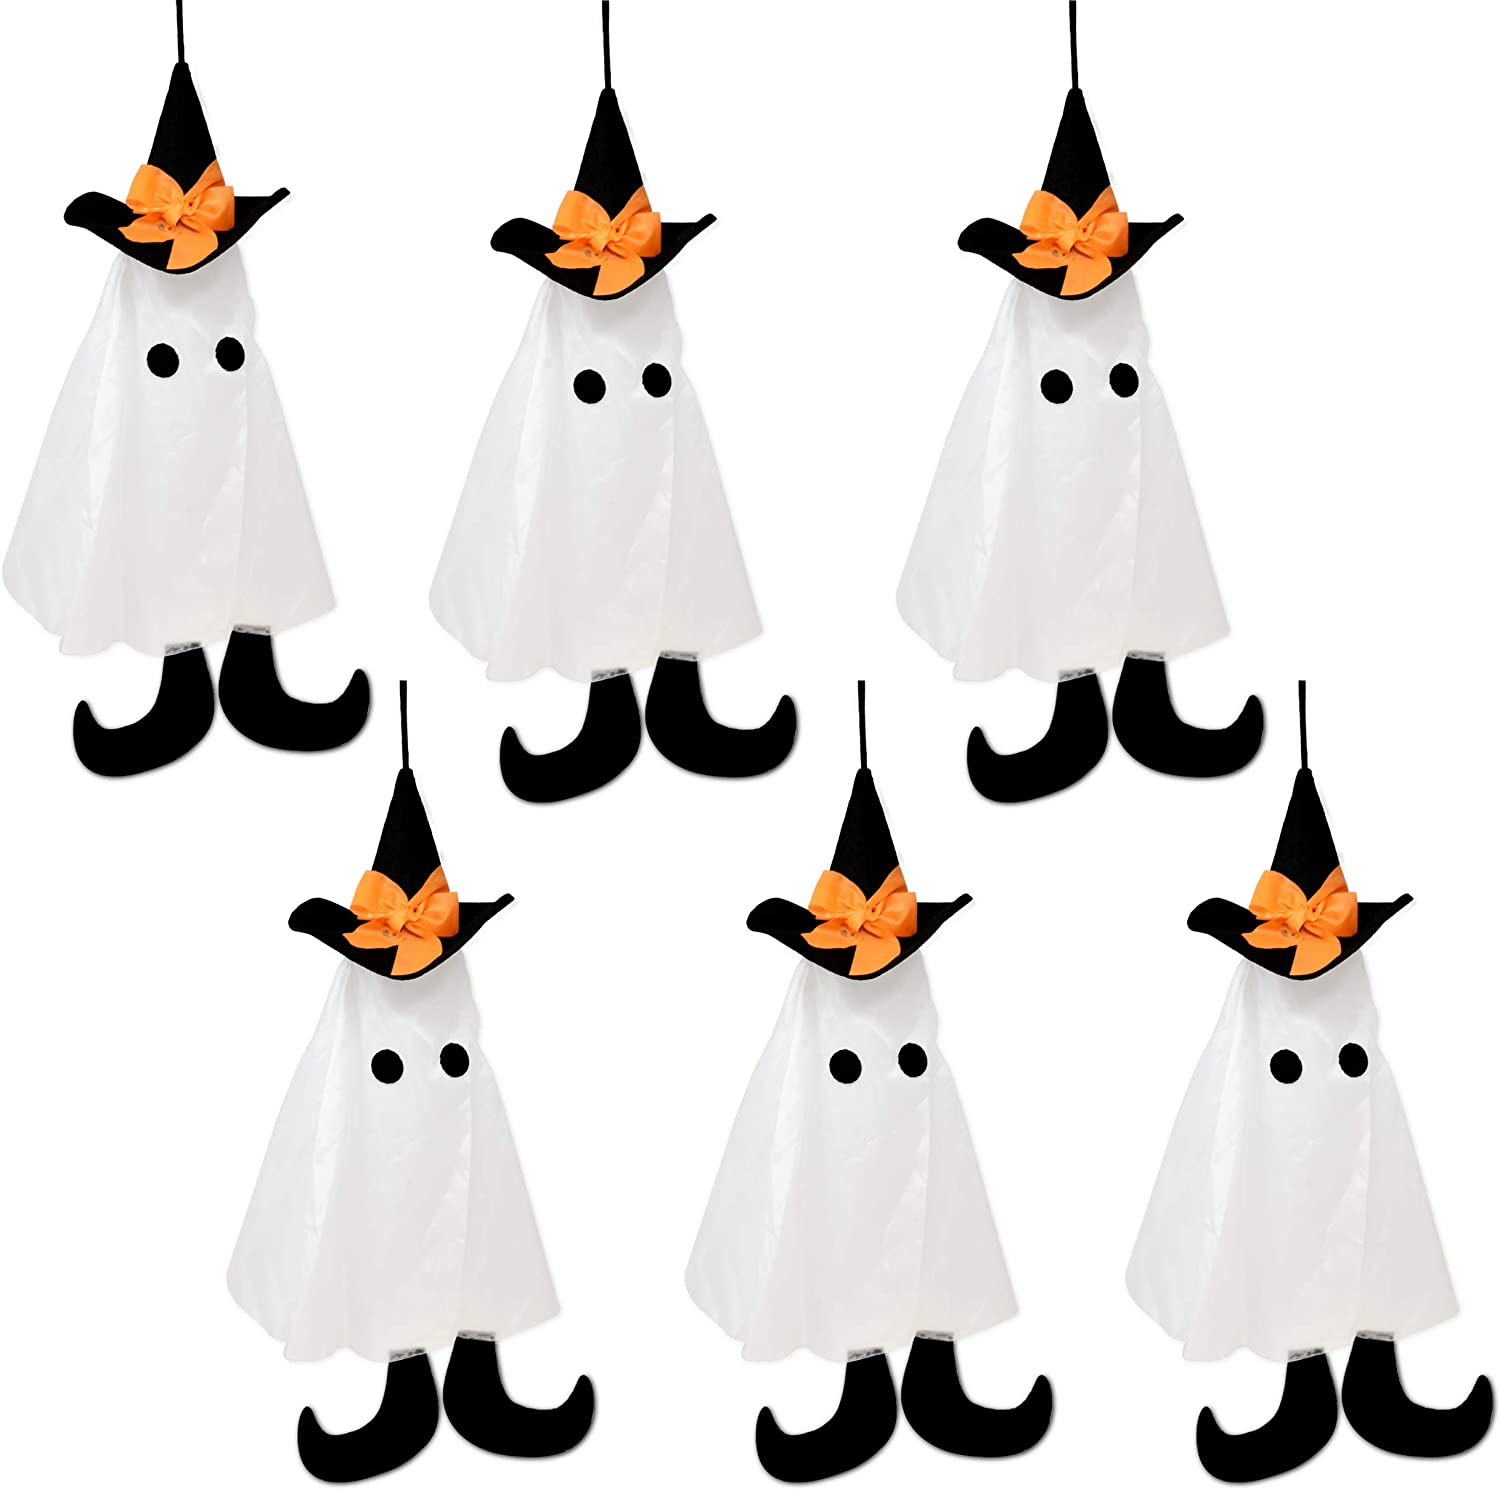 "6 Pack Halloween Party Decoration Hanging Ghosts 2.25"" Cute Flying White Ghost with Black Witches Hat for Outdoor Front Porch Yard Patio Lawn Garden Holiday Home Decor"